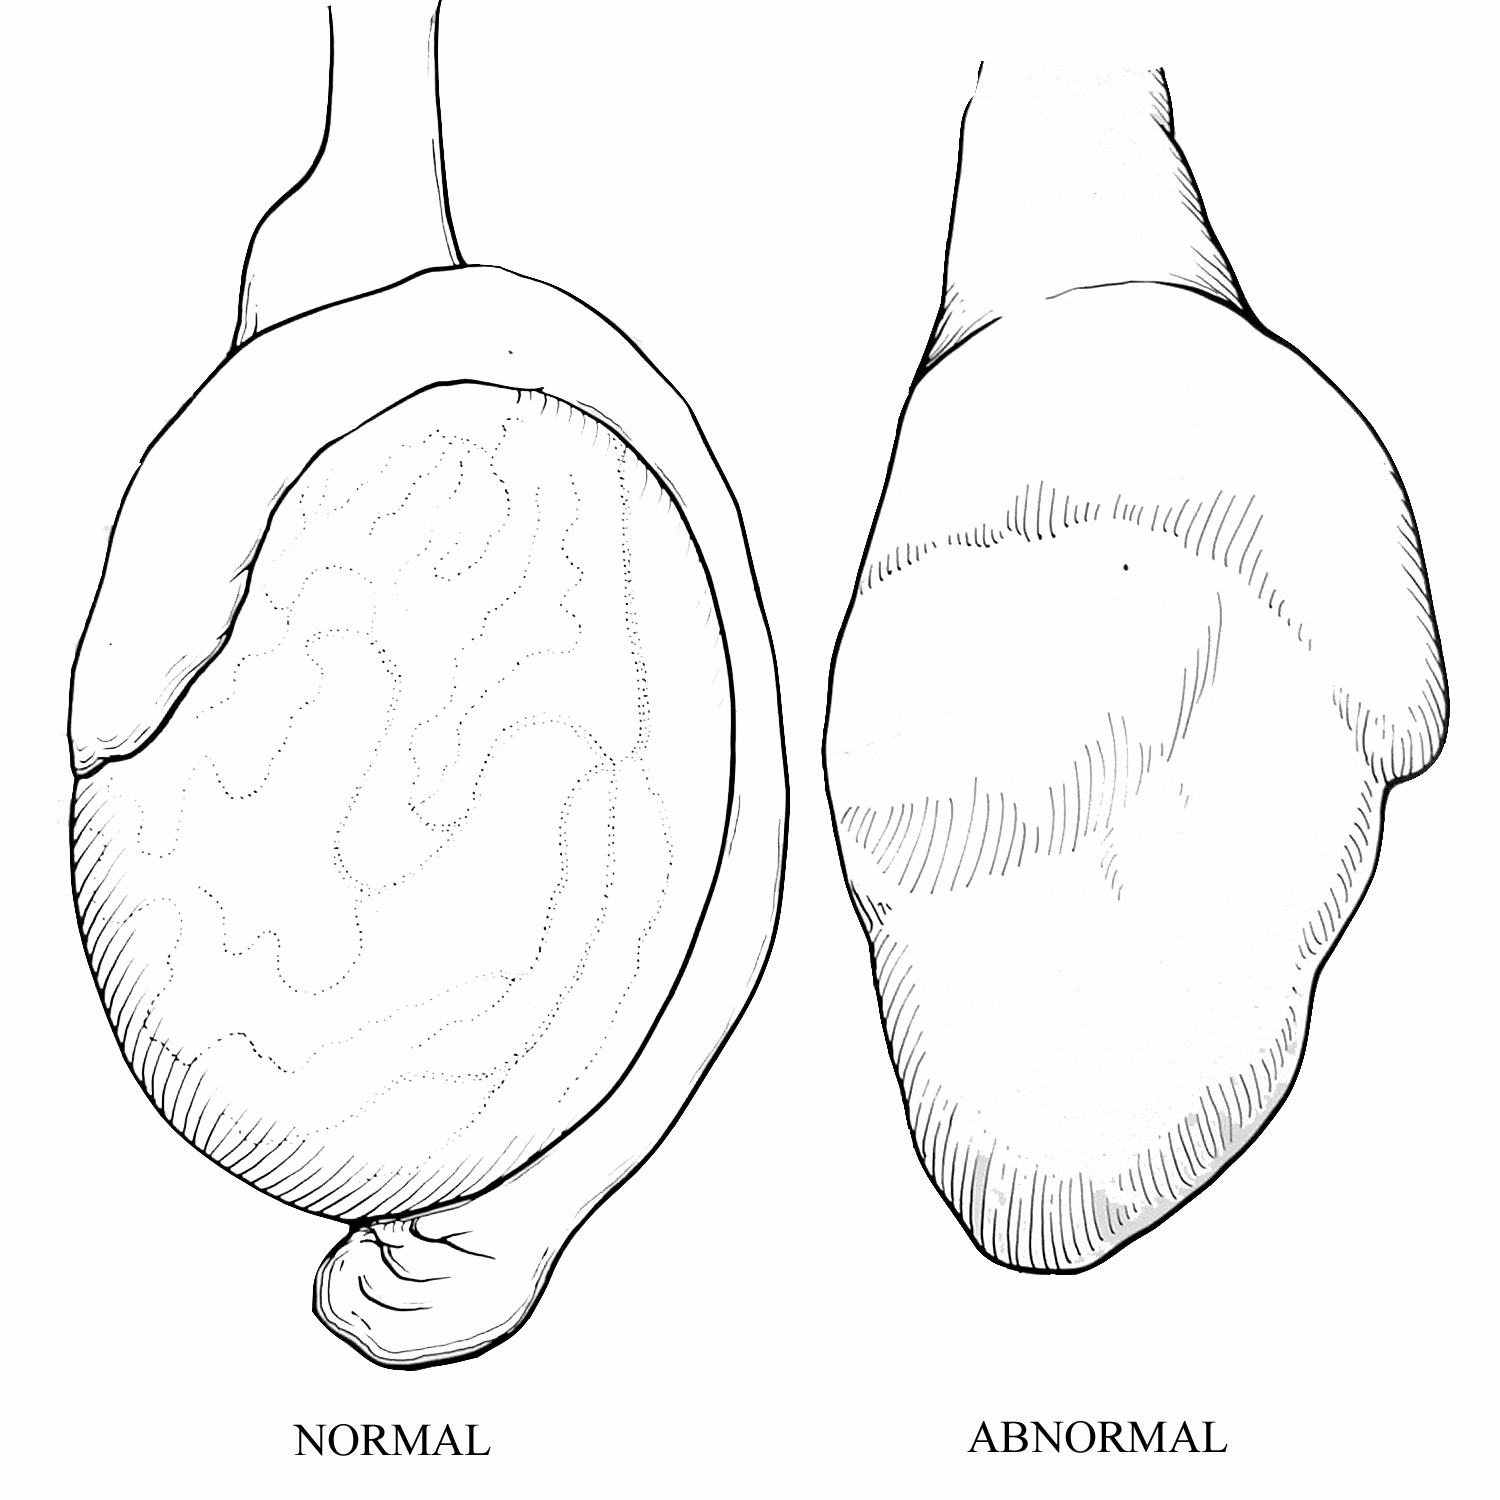 normal vs. abnormal testicle